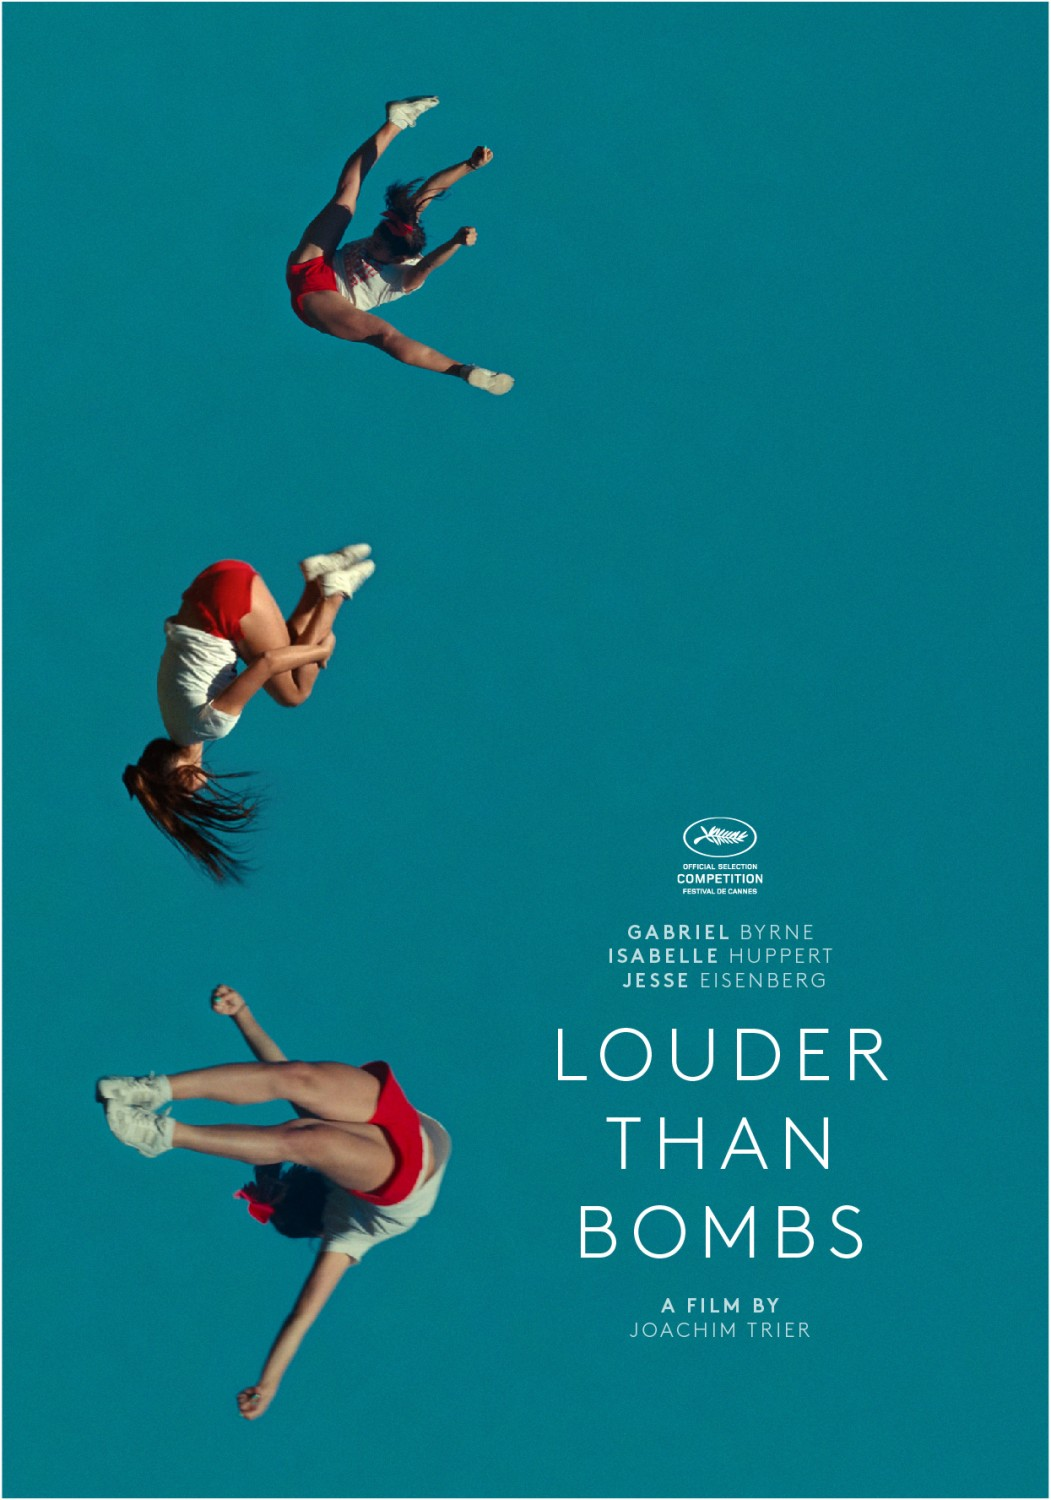 Louder Than Bombs Film